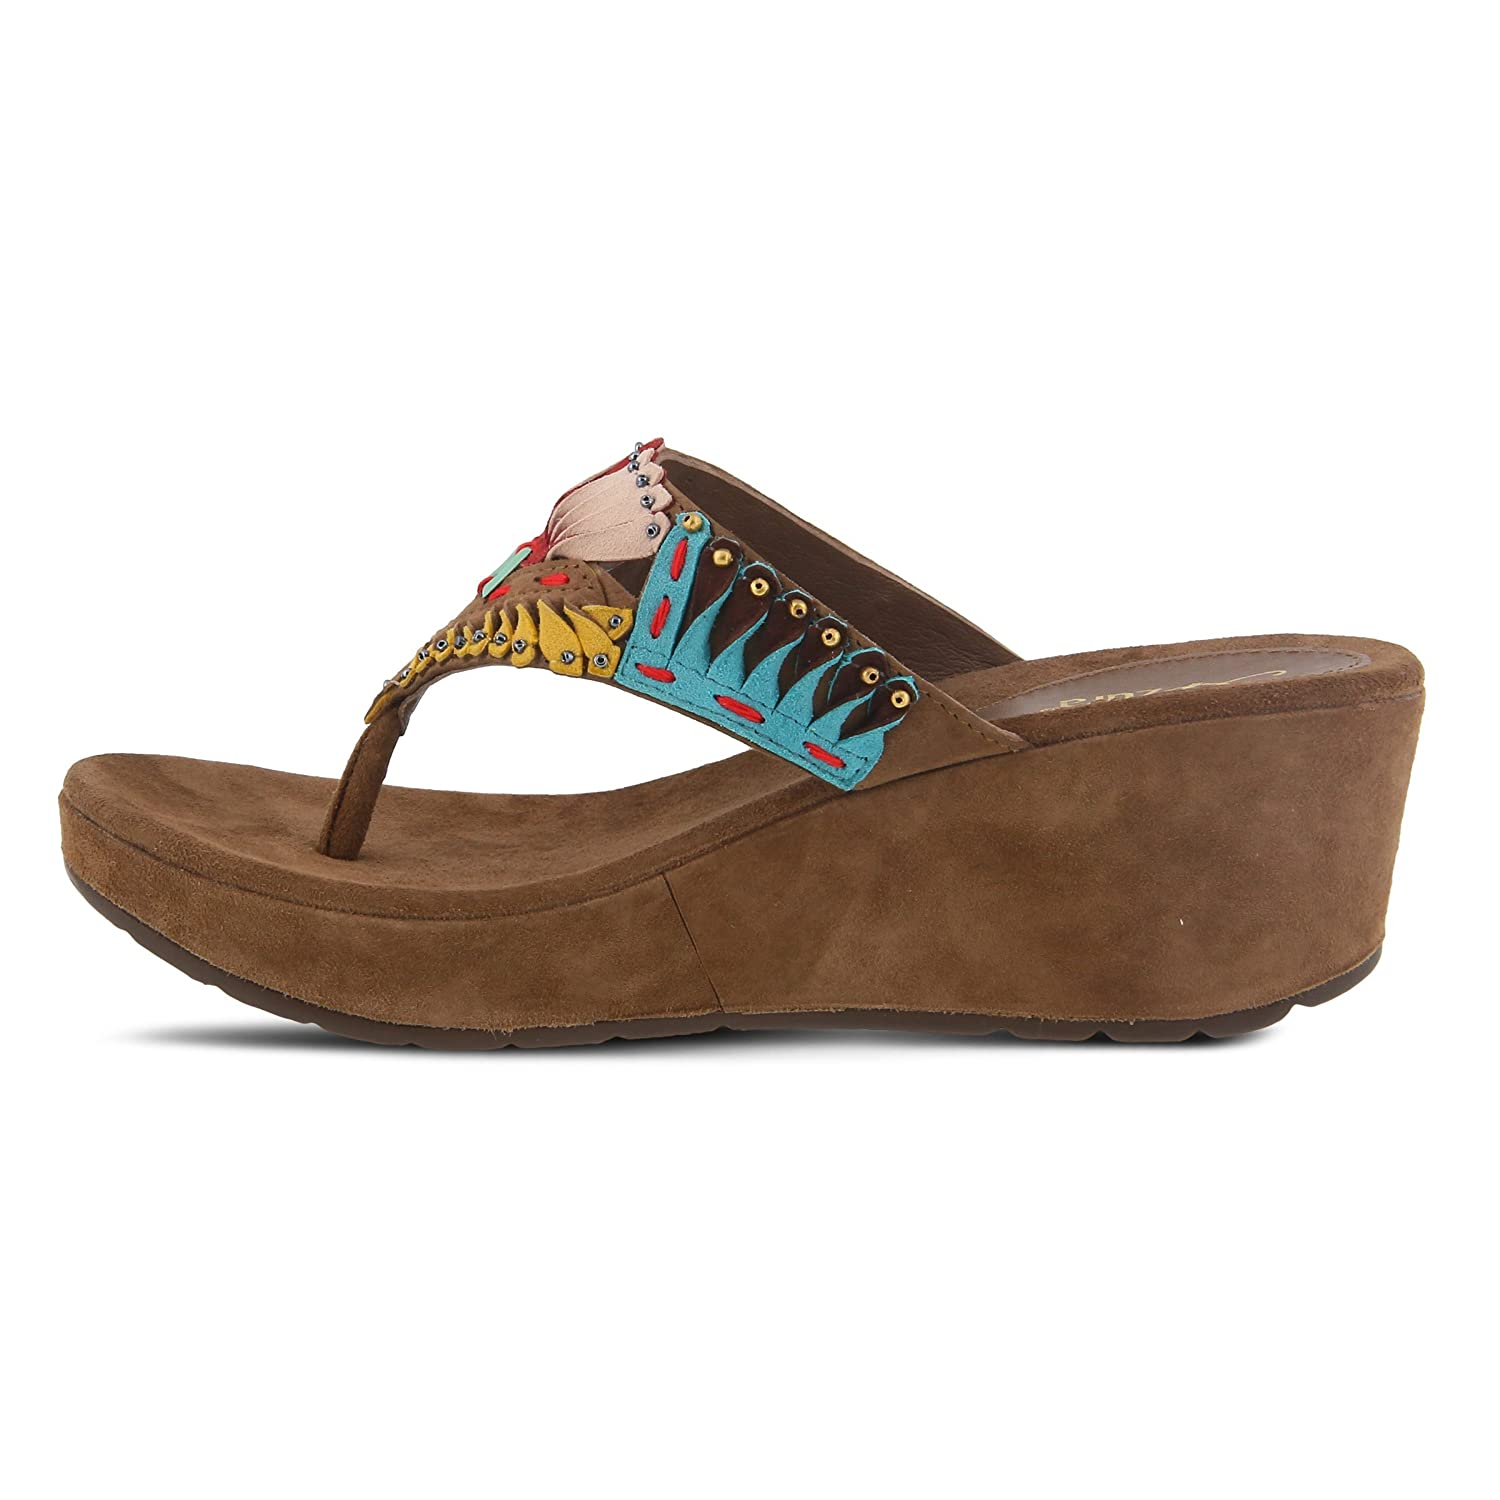 Azura Headress Slide Sandal Suede Uppers Colors Black Multi and Taupe